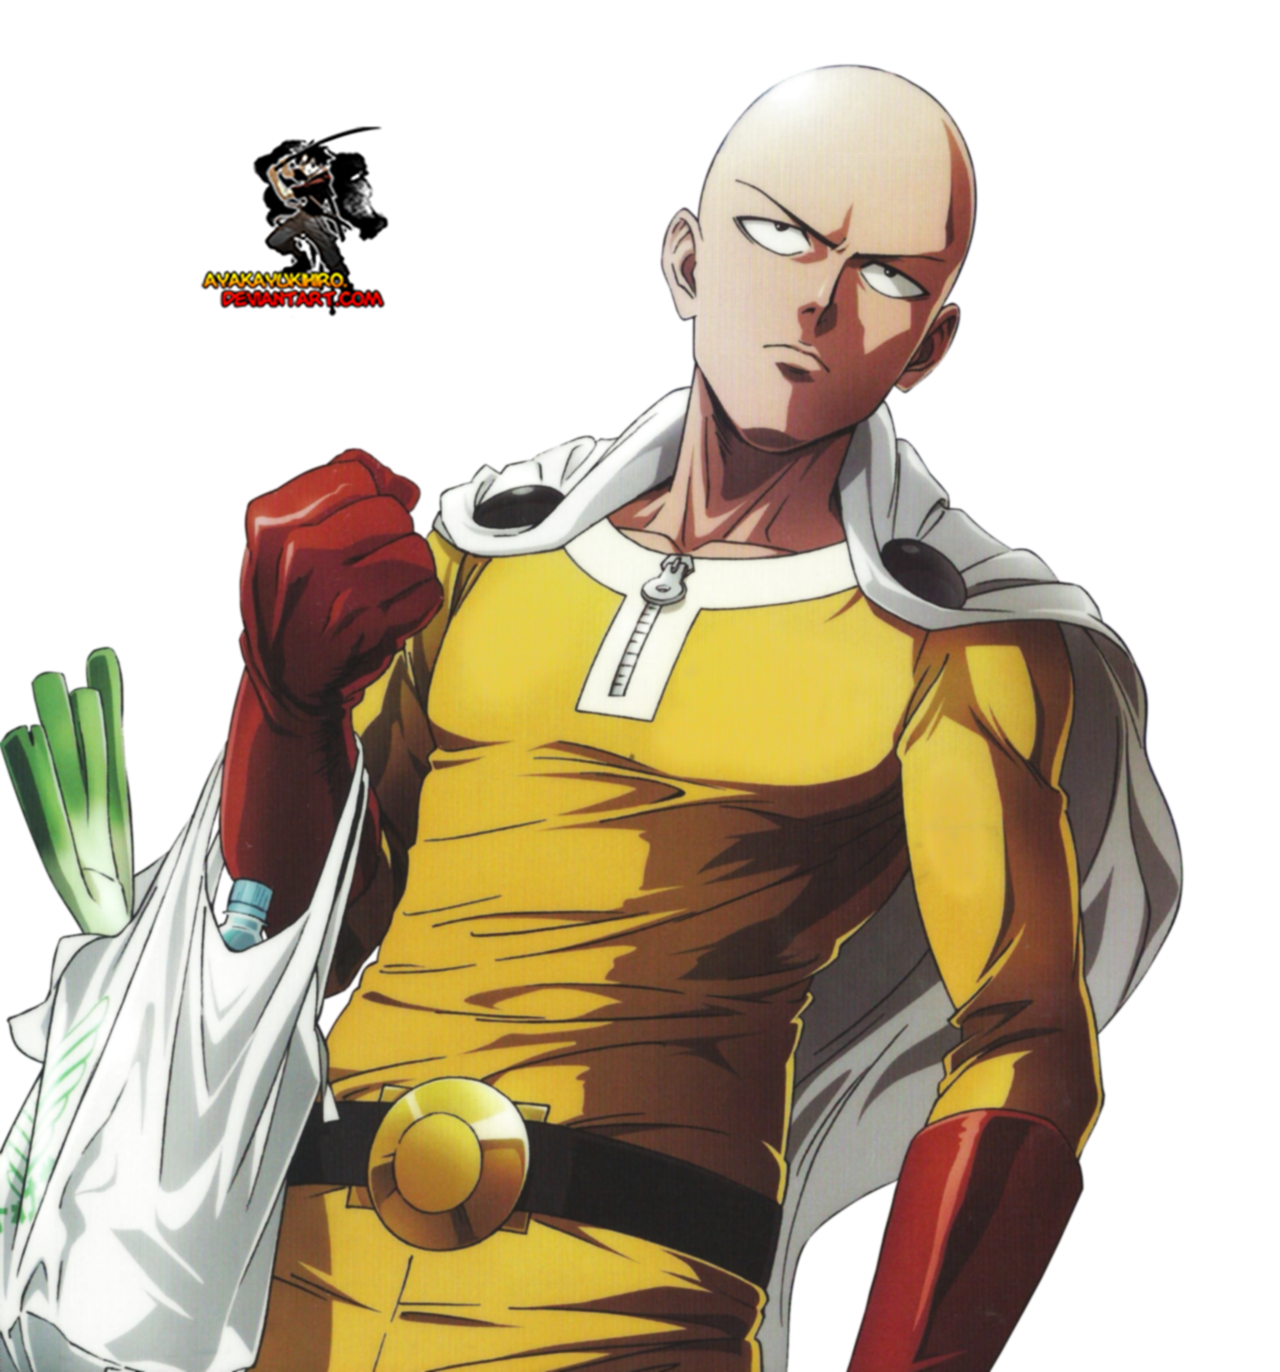 the dork review rob 39 s room one punch man saitama. Black Bedroom Furniture Sets. Home Design Ideas